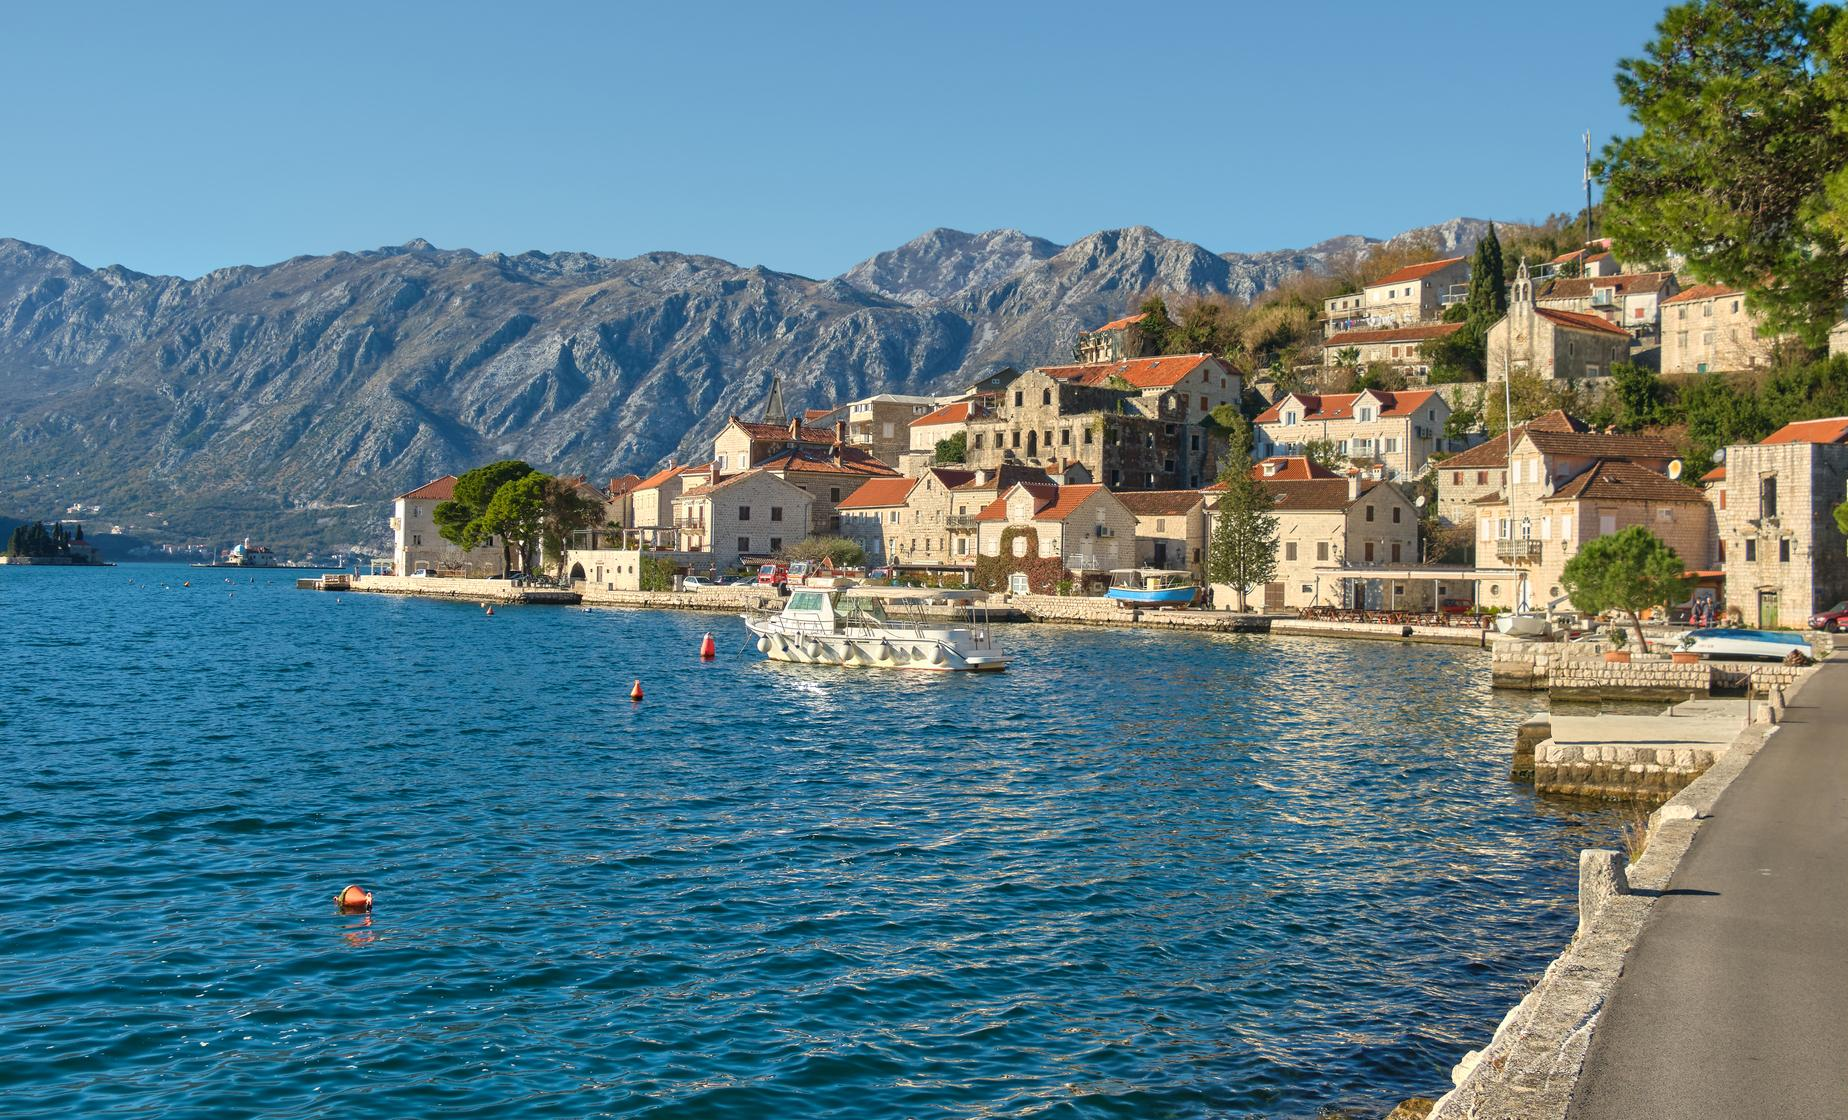 Town of Perast by Sea